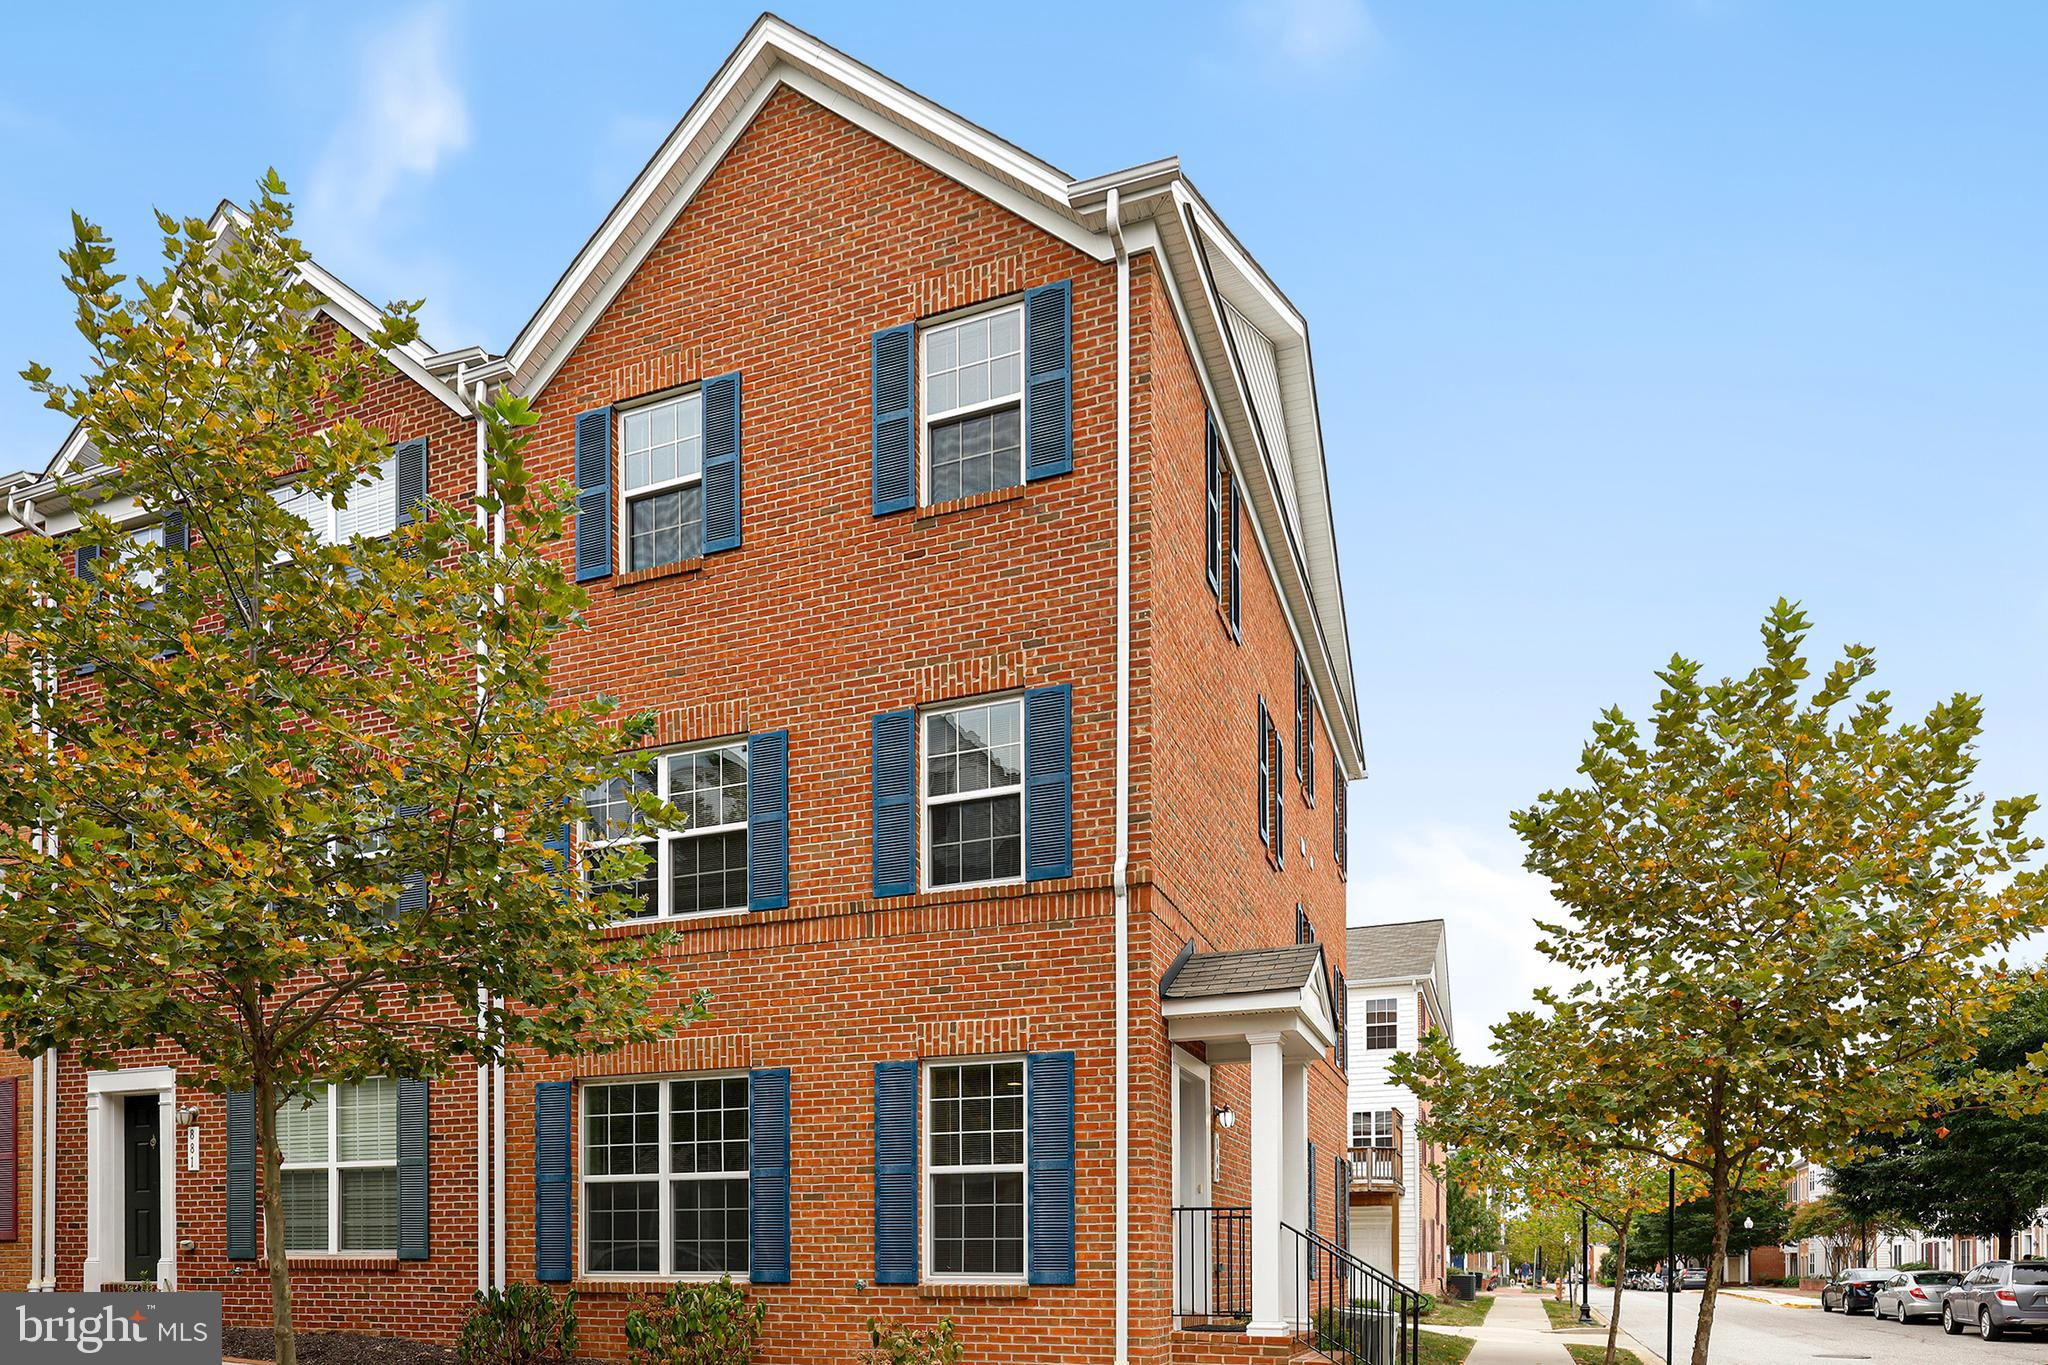 840 RAMSAY St, Baltimore, MD, 21230